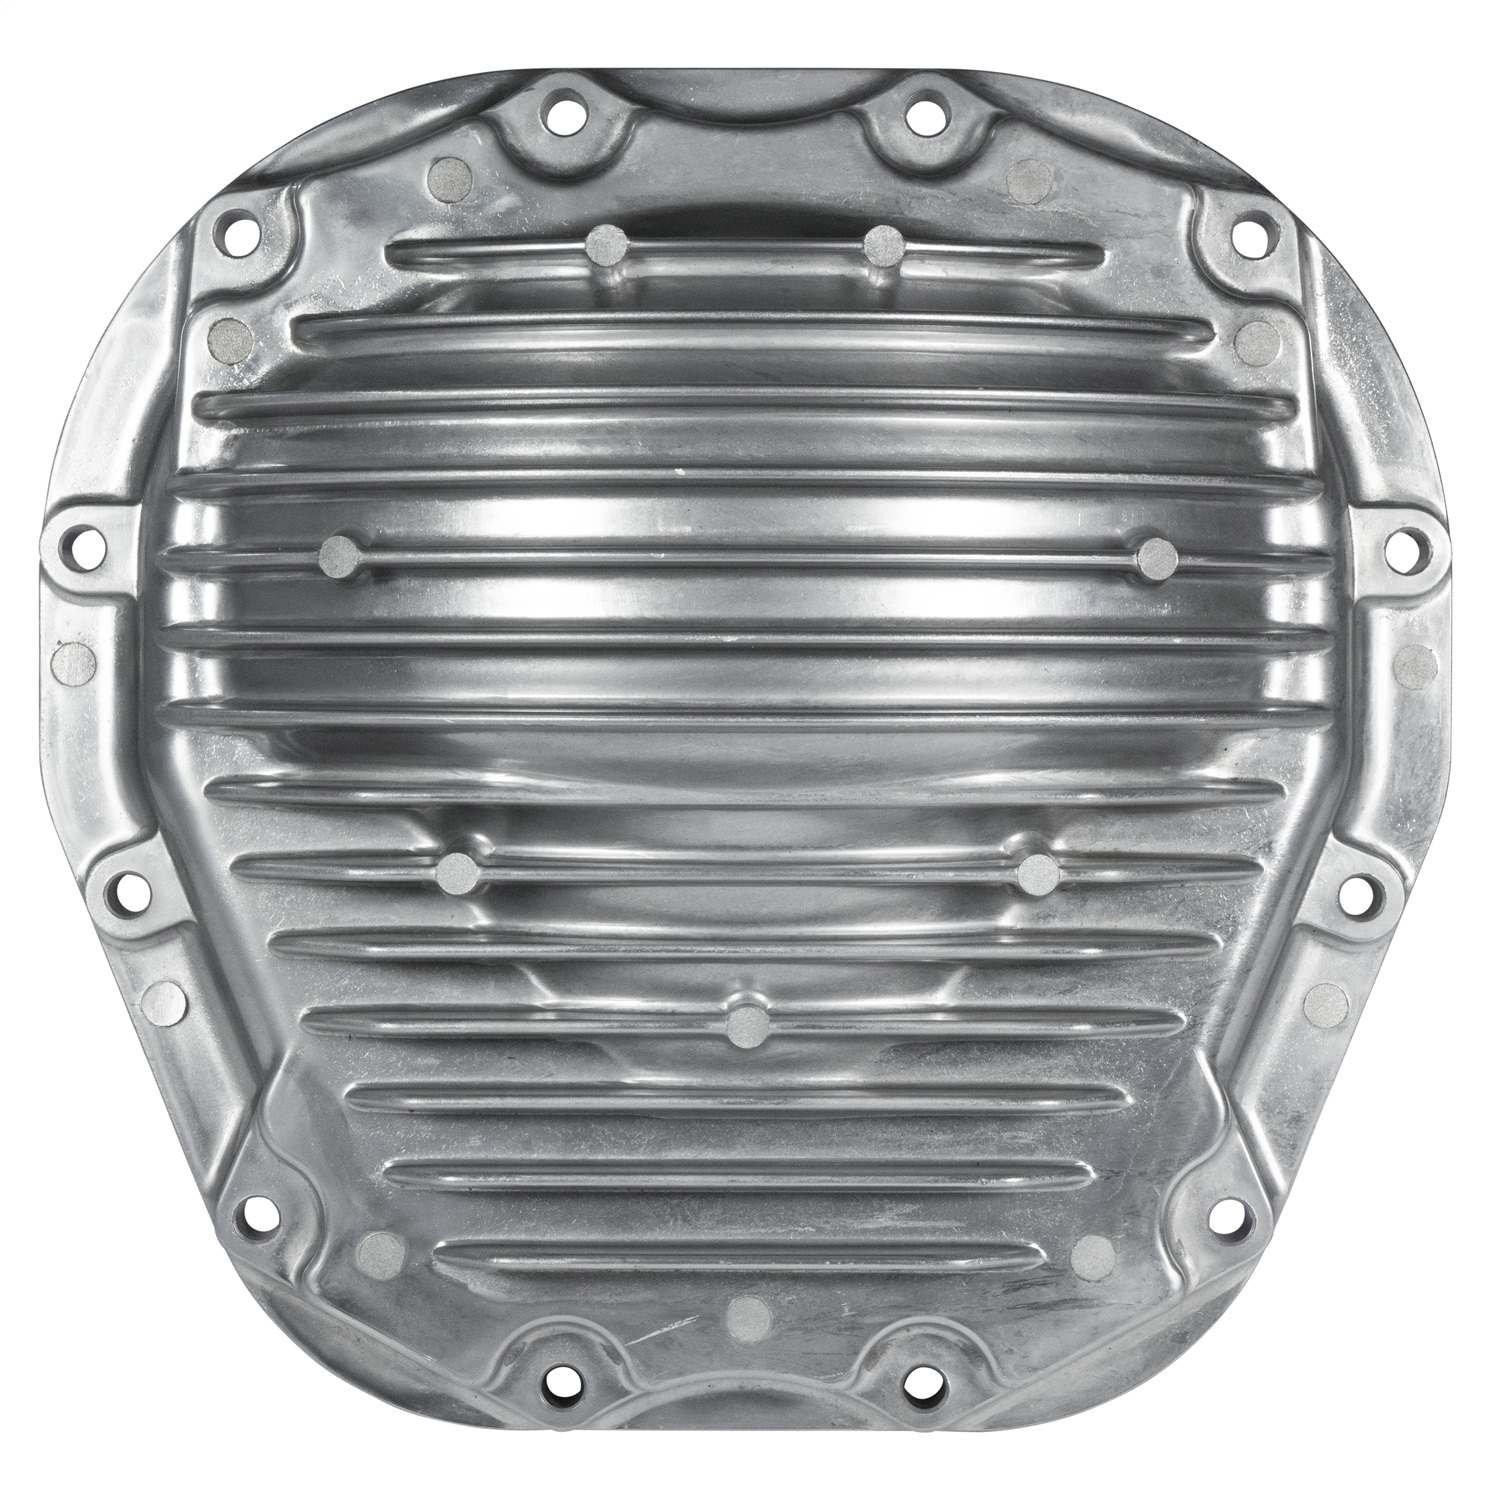 Yukon Gear & Axle YP C5-F10.5 Differential Cover